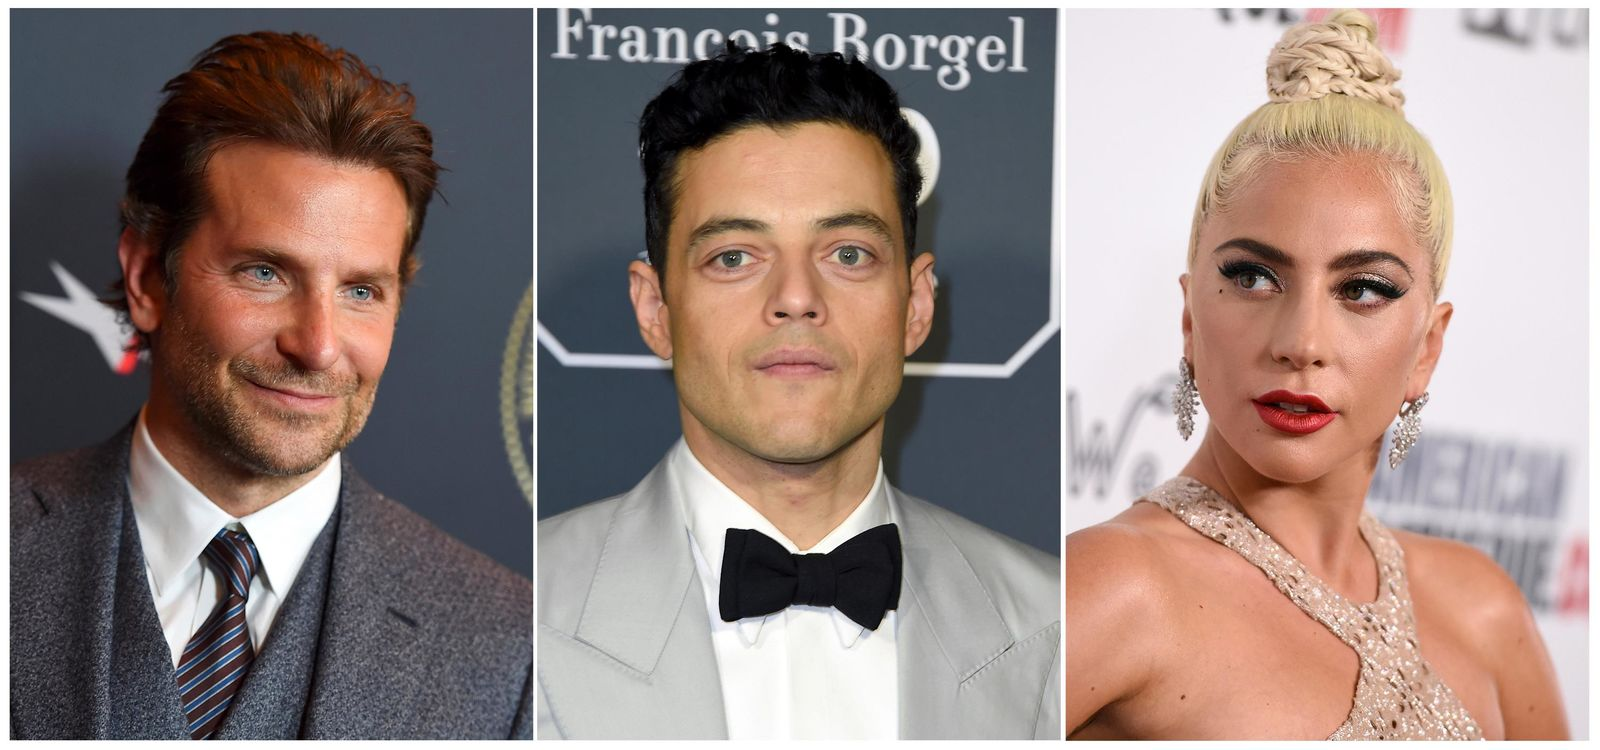 This combination photo shows actors, from left, Bradley Cooper, Rami Malek and Lady Gaga who are among the presenters announced for Sunday's Screen Actors Guild Awards. Other presenters announced Wednesday by the actors union include Chadwick Boseman, Sam Elliott, Constance Wu, John David Washington, Adam Driver, Michelle Yeoh, Ken Jeong, Henry Golding and Angela Bassett. Ben Hardy, Gwilym Le and Joe Mozzello round out the list of first presenters. Megan Mullally will host the 25th SAG Awards that will air on TNT and TBS. (AP Photo)